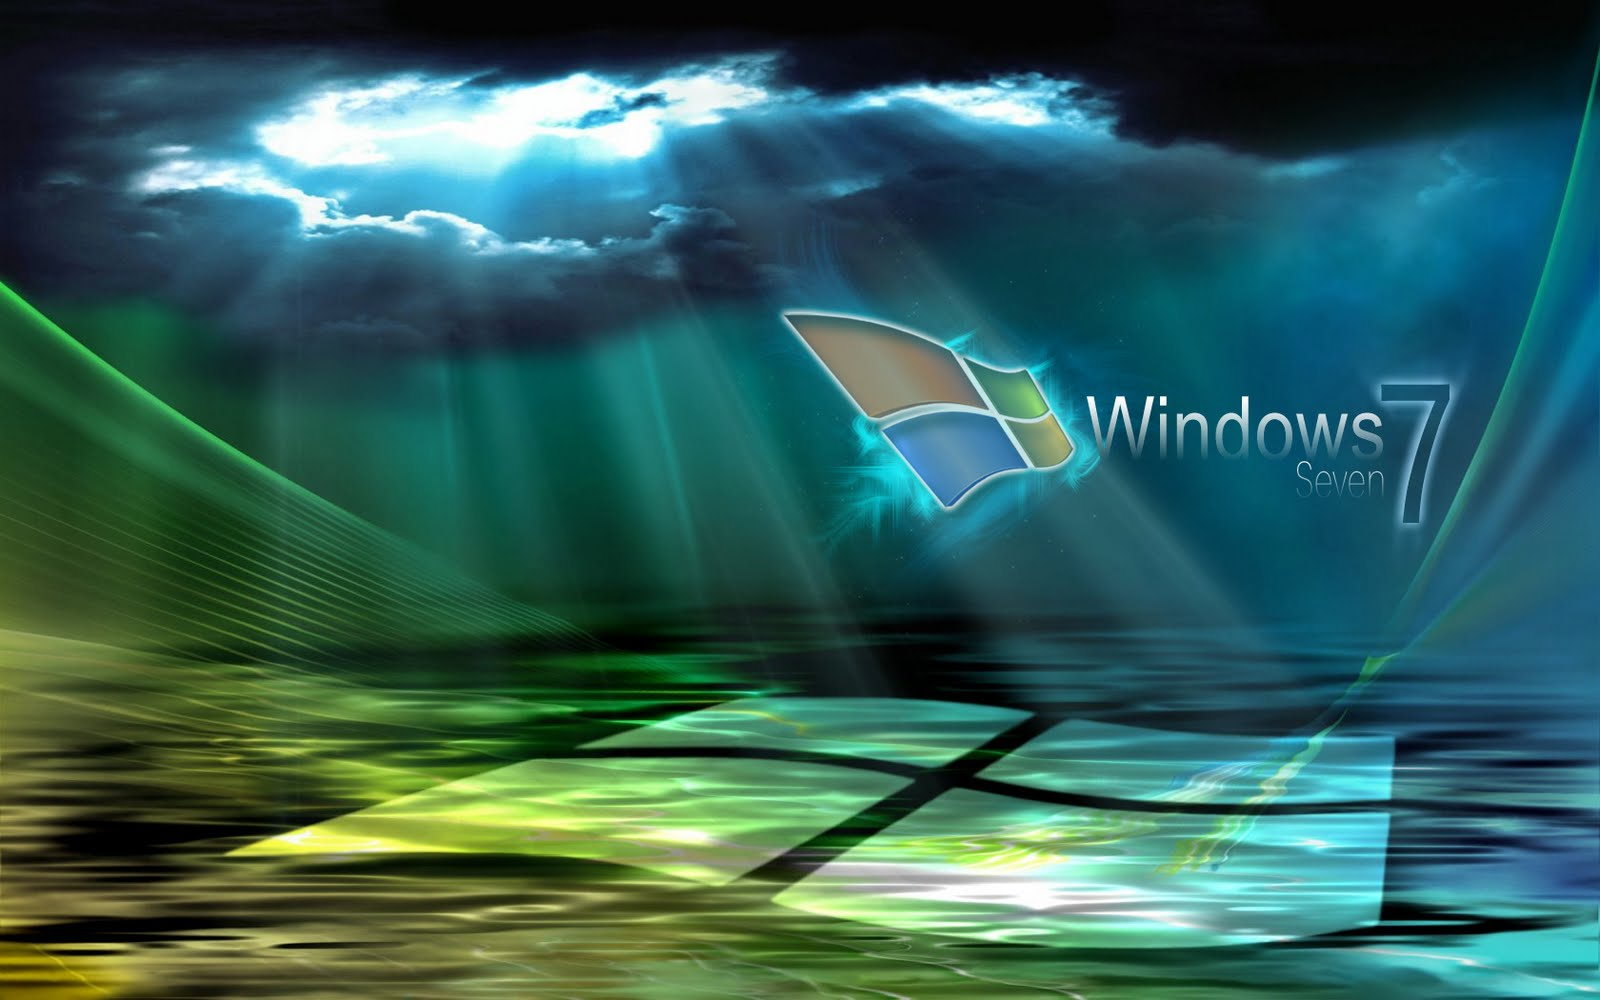 http://2.bp.blogspot.com/-PNkKKaoBYjM/TxJM4-ew92I/AAAAAAAACwE/AkxkBdW5z4s/s1600/windows7+3d+wallpaper+pd.jpg